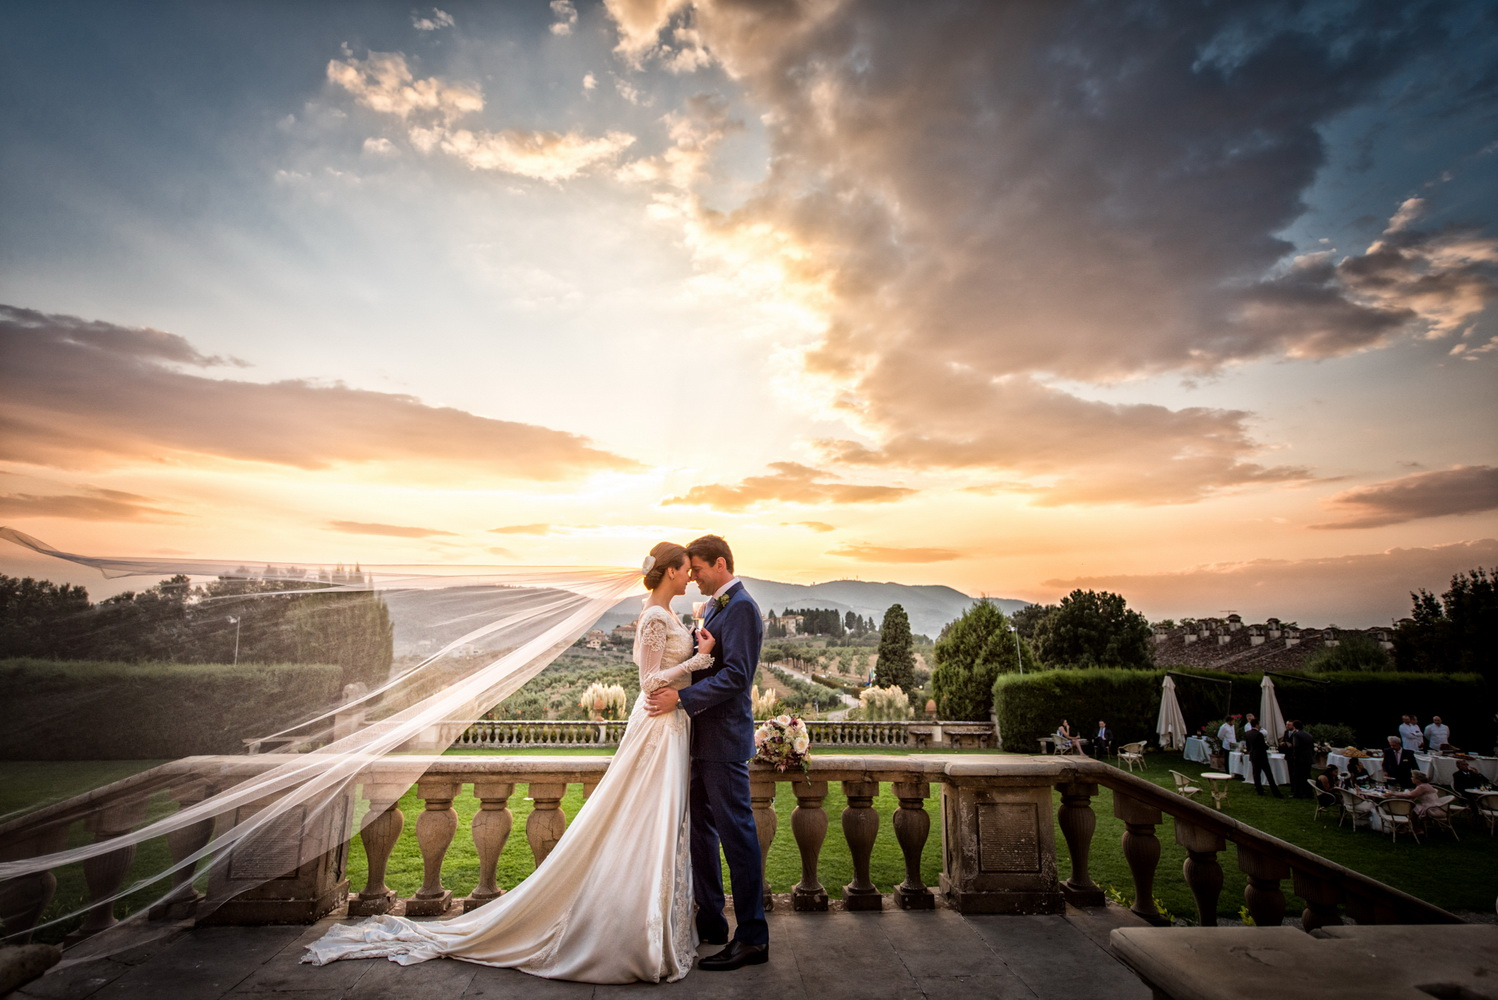 destination wedding na toscana | caroline e fernando Destination Wedding na Toscana | Caroline e Fernando marco zammarchi destination wedding 51